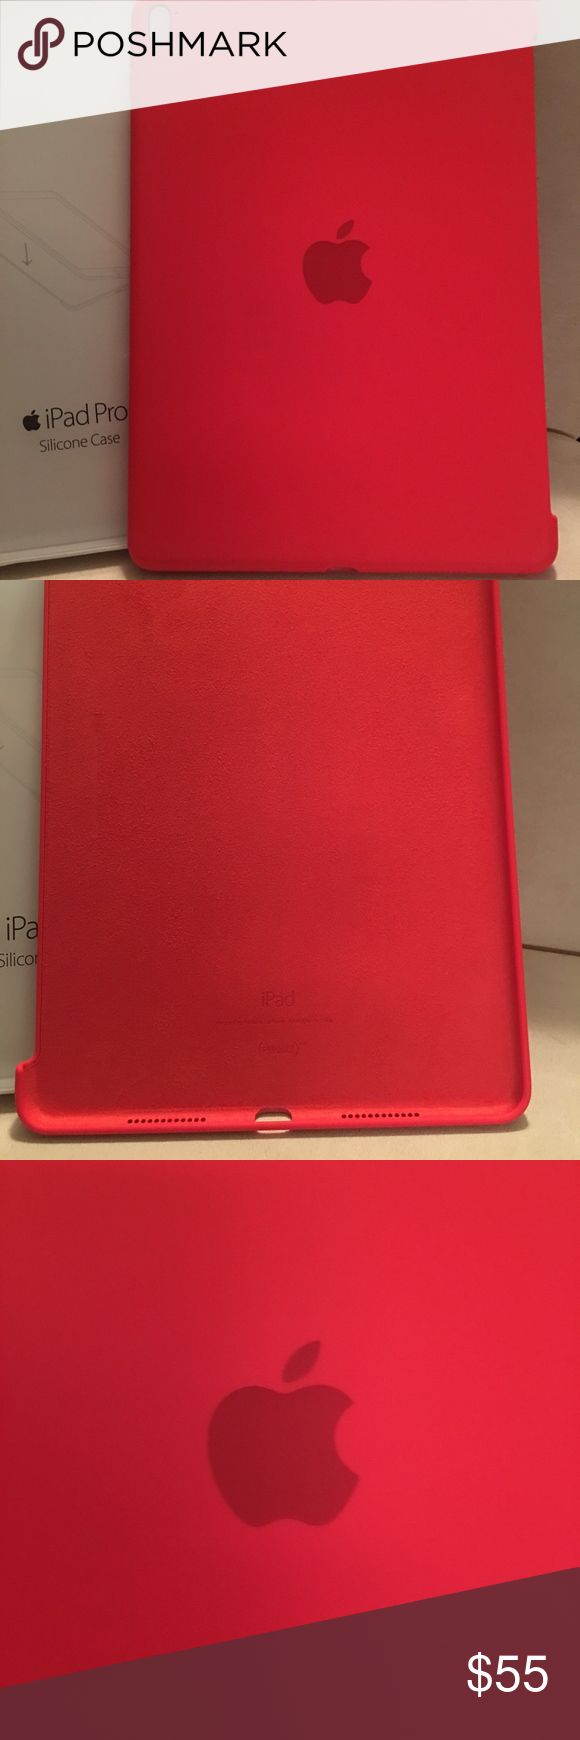 NWT APPLE OEM IPAD PRO BACK COVER NEW WITH TAG AND IN PACKAGE. AUTHENTIC OEM APPLE IPAD PRO 9.7 INCH  RUBBER SILICONE CASE.  COLOR IS LIKE BRIGHT RED. THIS HAS A FELT INNER MATERIAL TO PROTECT THE BACK OF YOUR IPAD FROM SCRATCHES /DINGS. IT IS DEFINITELY WORTH THE INVESTMENT. I KEEP ONE OF THESE ON ALL OF MY DEVICES AND THEY WORK:-) RETAIL $69.00.  BOX HAS MINOR SCUFFS AND A DING FROM HANDLING/STORAGE.  THANKS FOR VIEWING AND SHARING MY CLOSET. PLEASE COME BACK SOON AS I FREQUENTLY UPDATE…